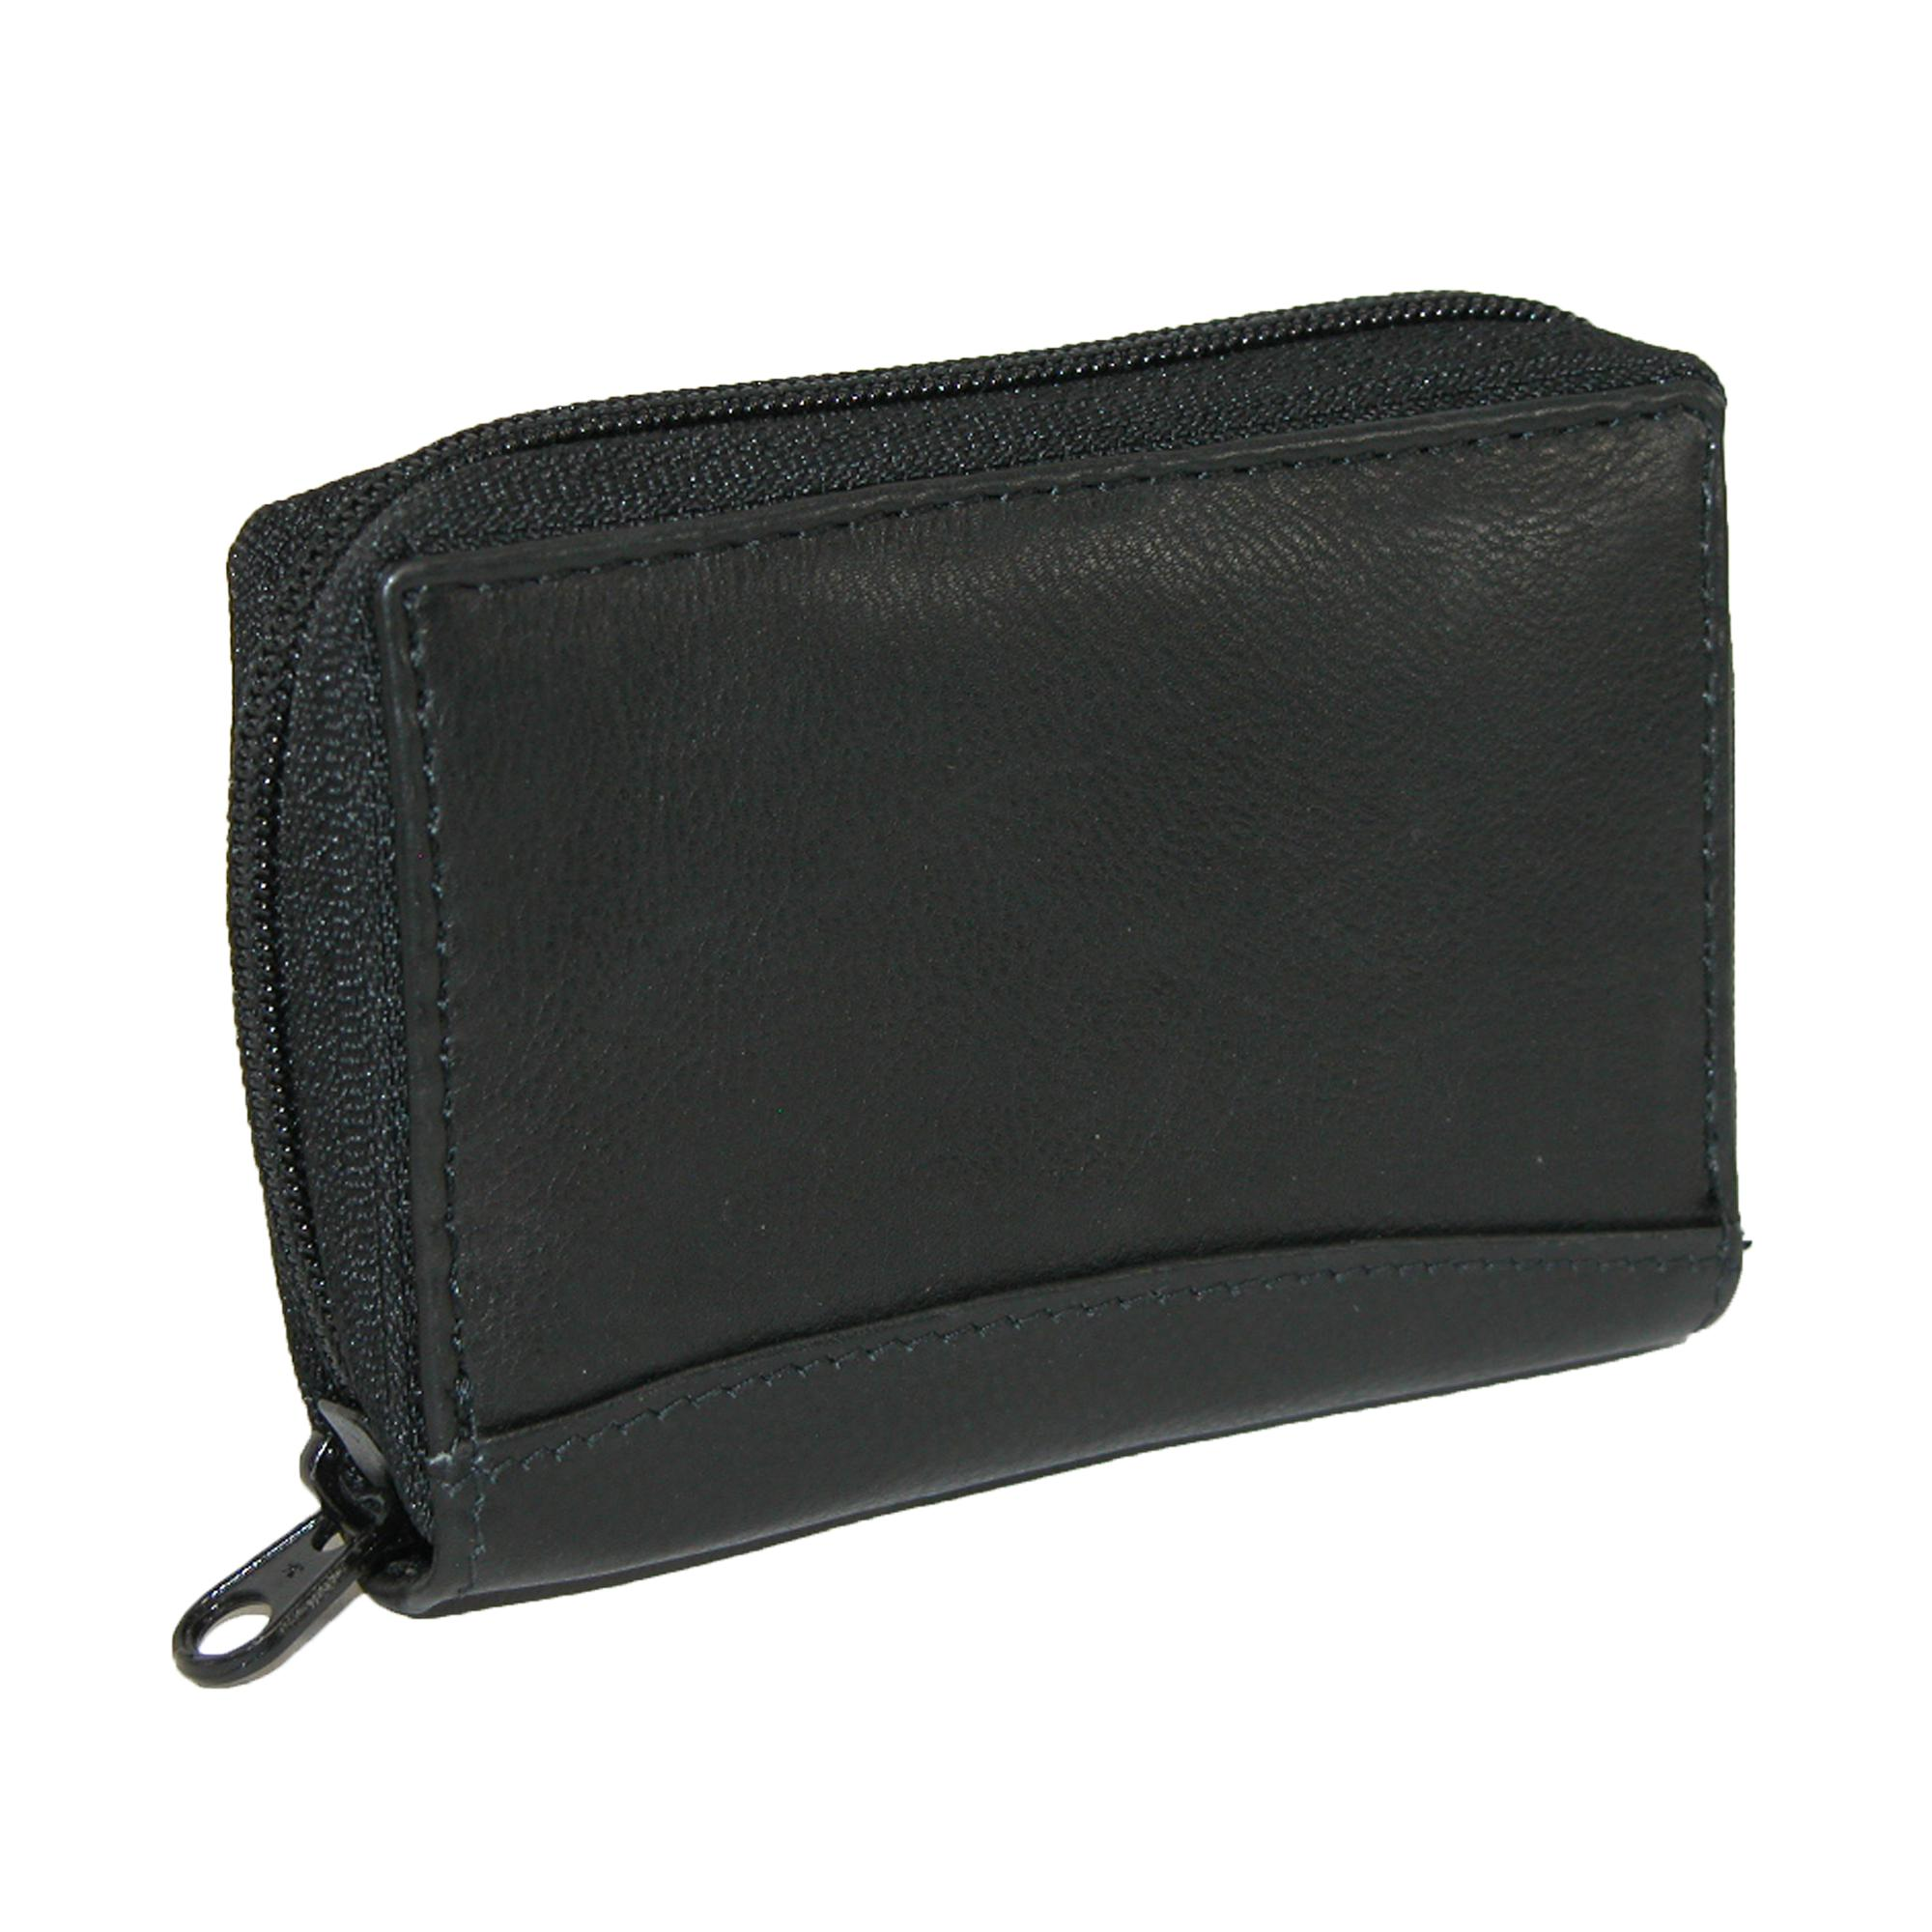 Paul_&_Taylor_Men's_Leather_Zip_Around_Accordion_Credit_Card_Wallet_-